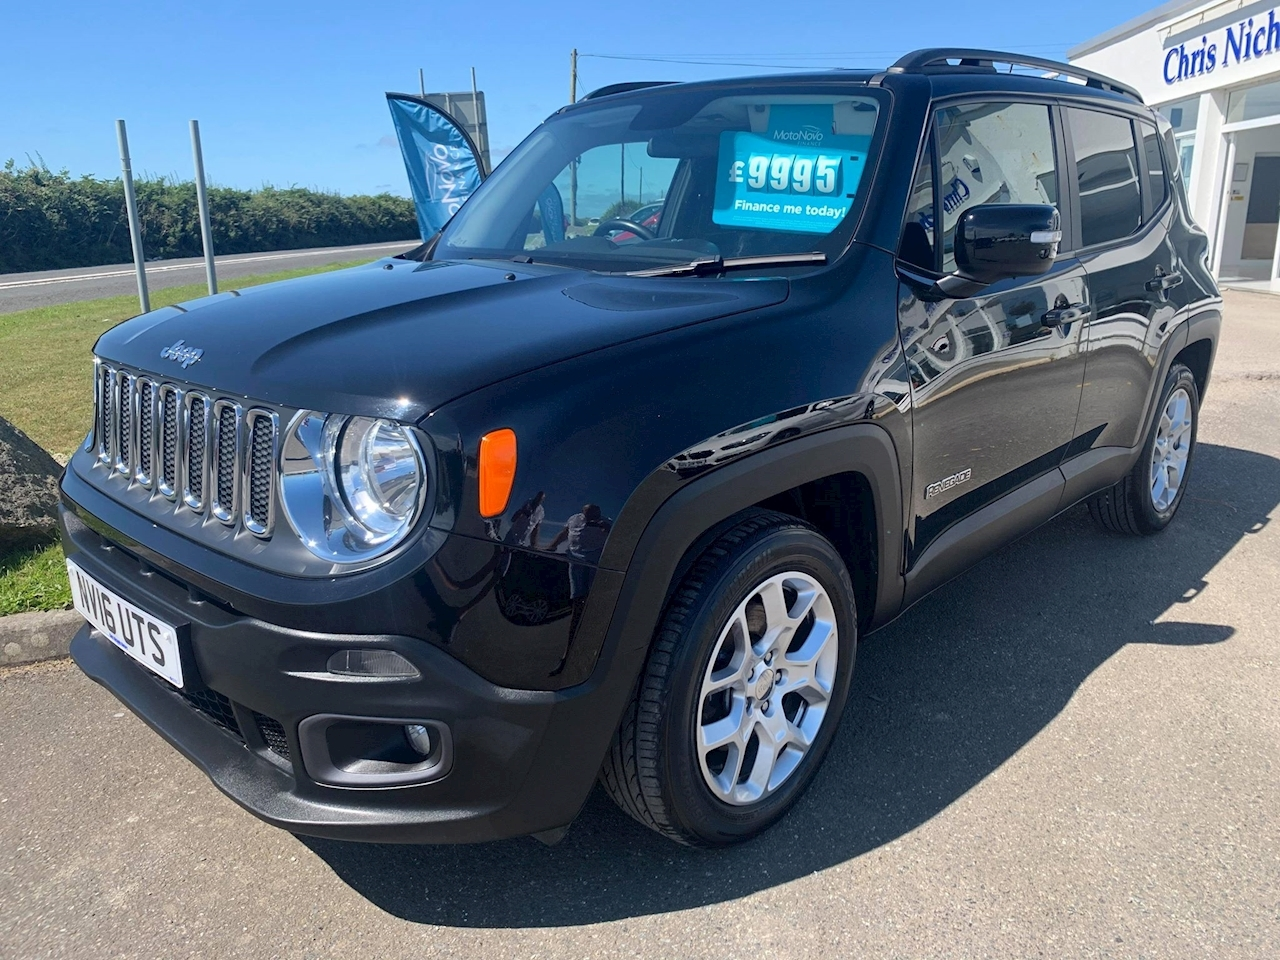 Jeep Renegade M-Jet Longitude Estate 1.6 Manual Diesel